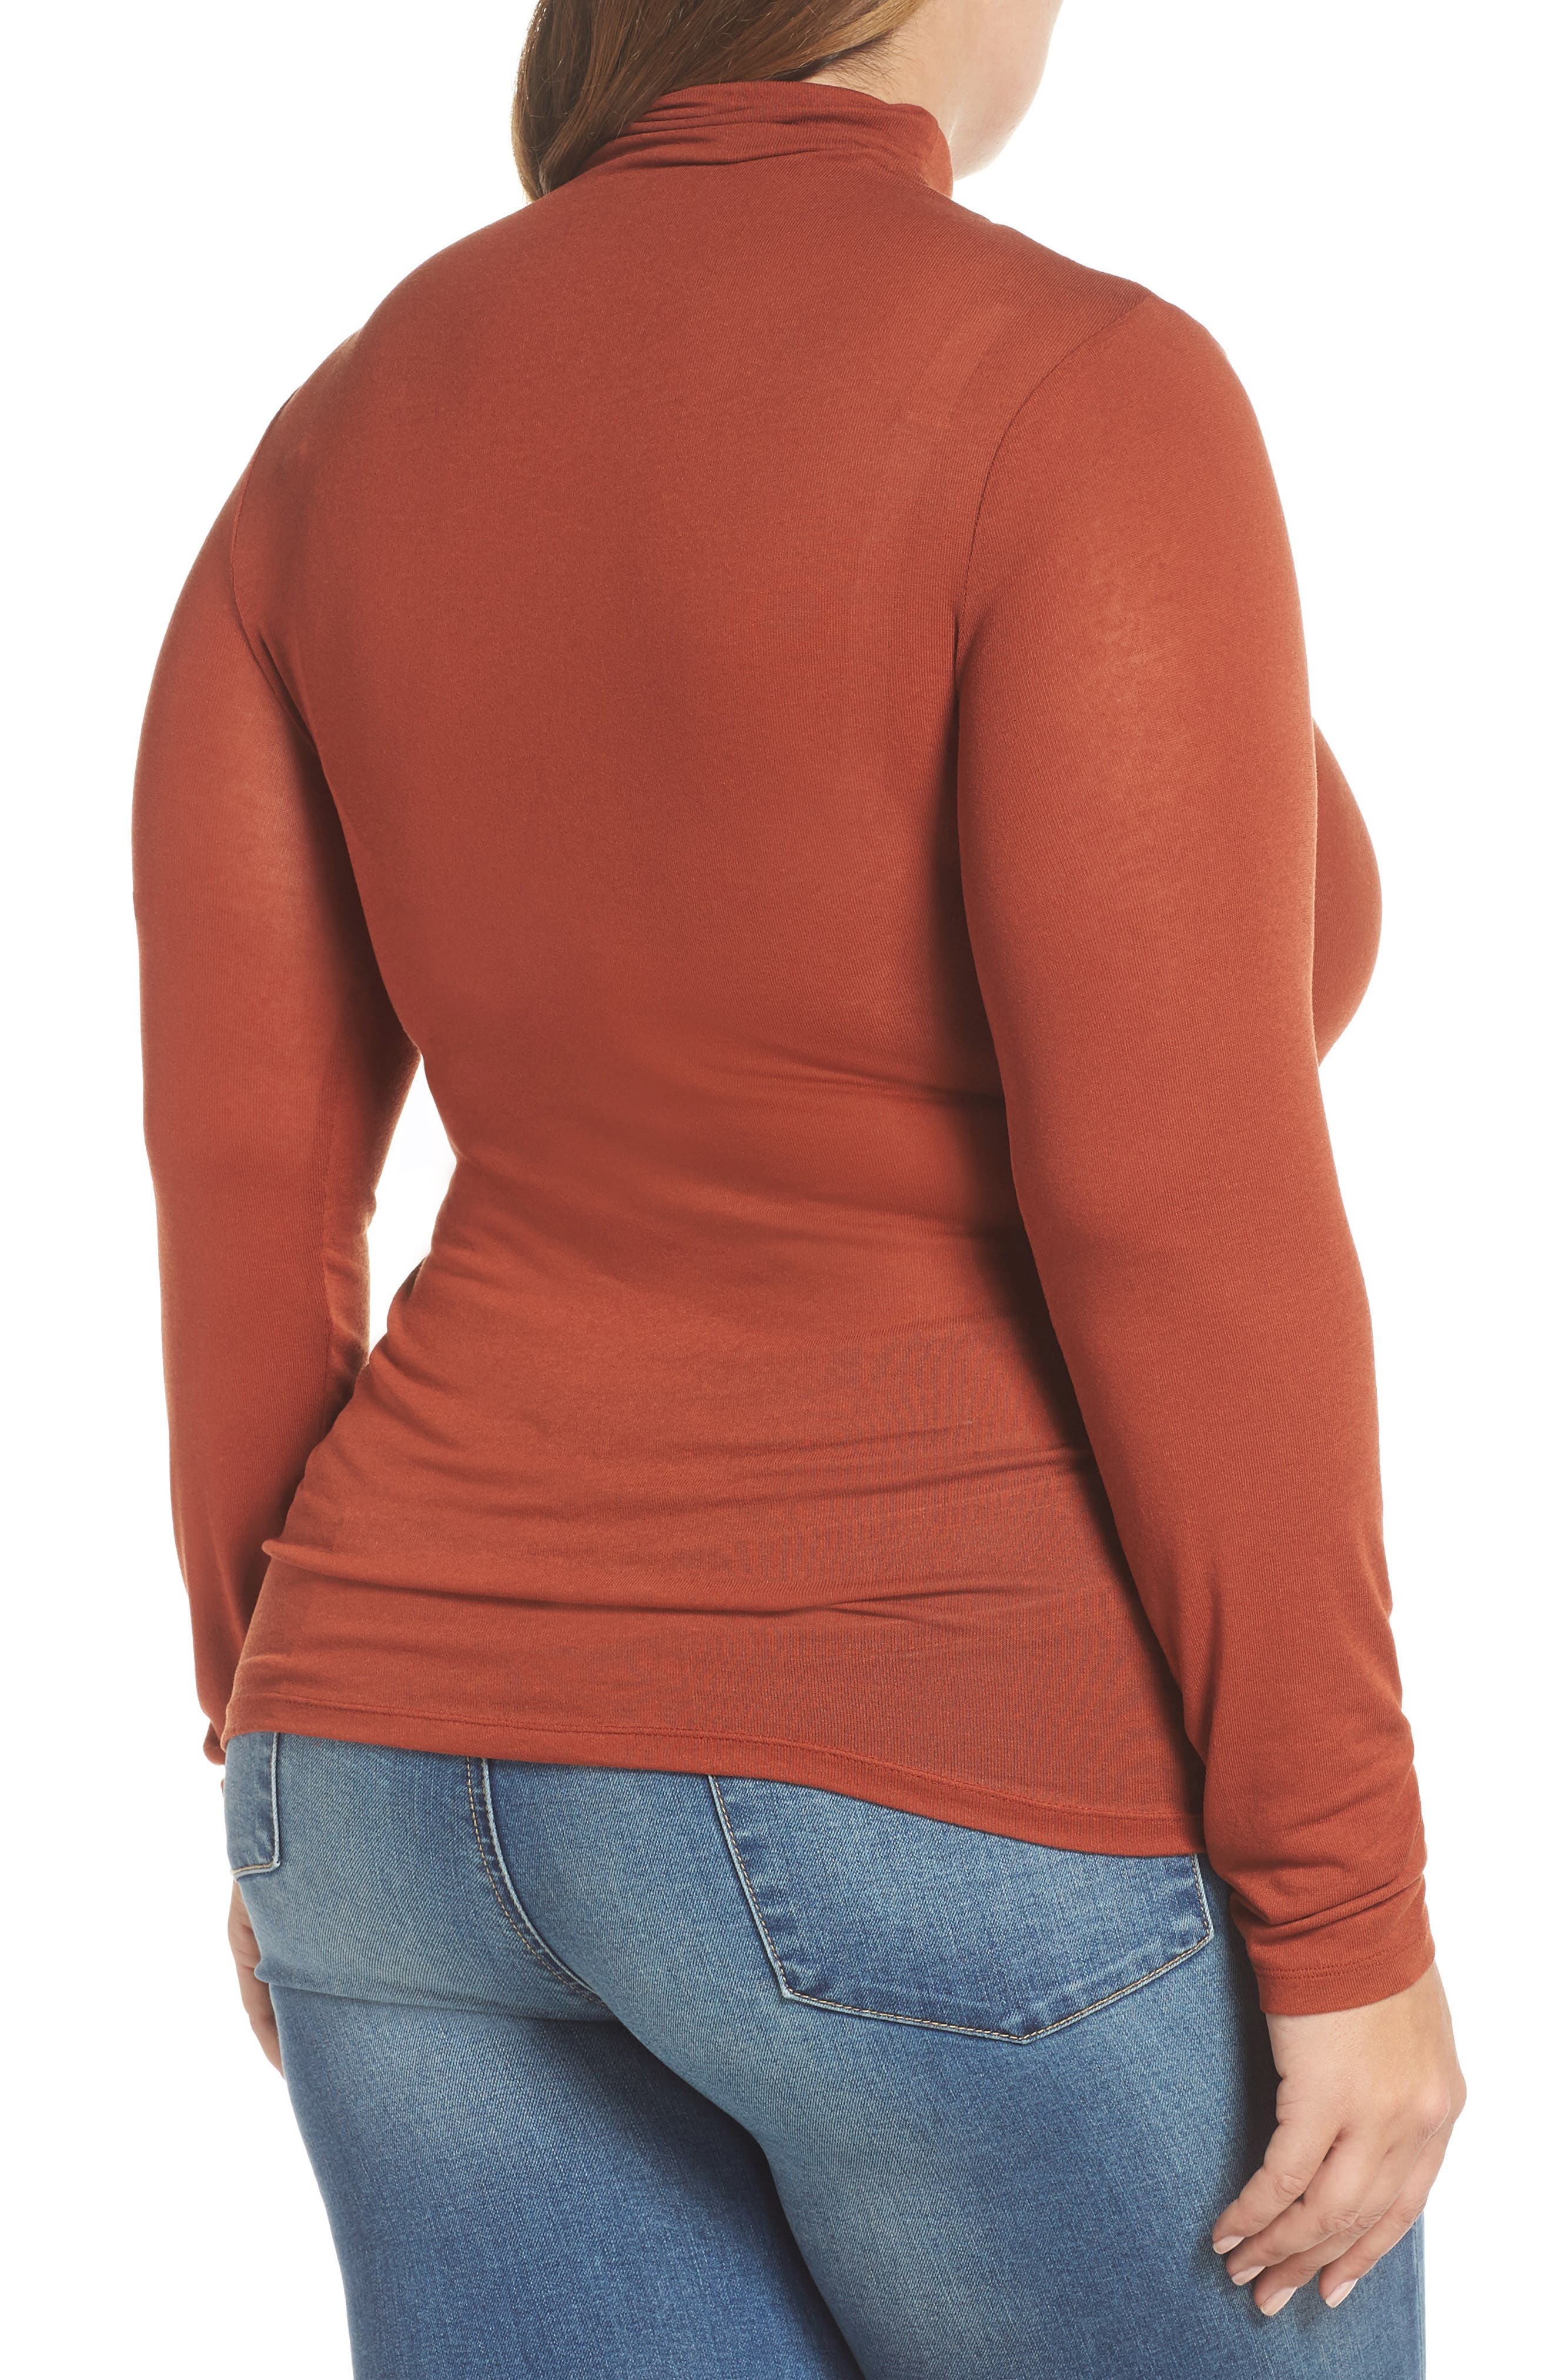 Lightweight Long Sleeve Funnel Neck Top,                             Alternate thumbnail 9, color,                             BROWN SPICE